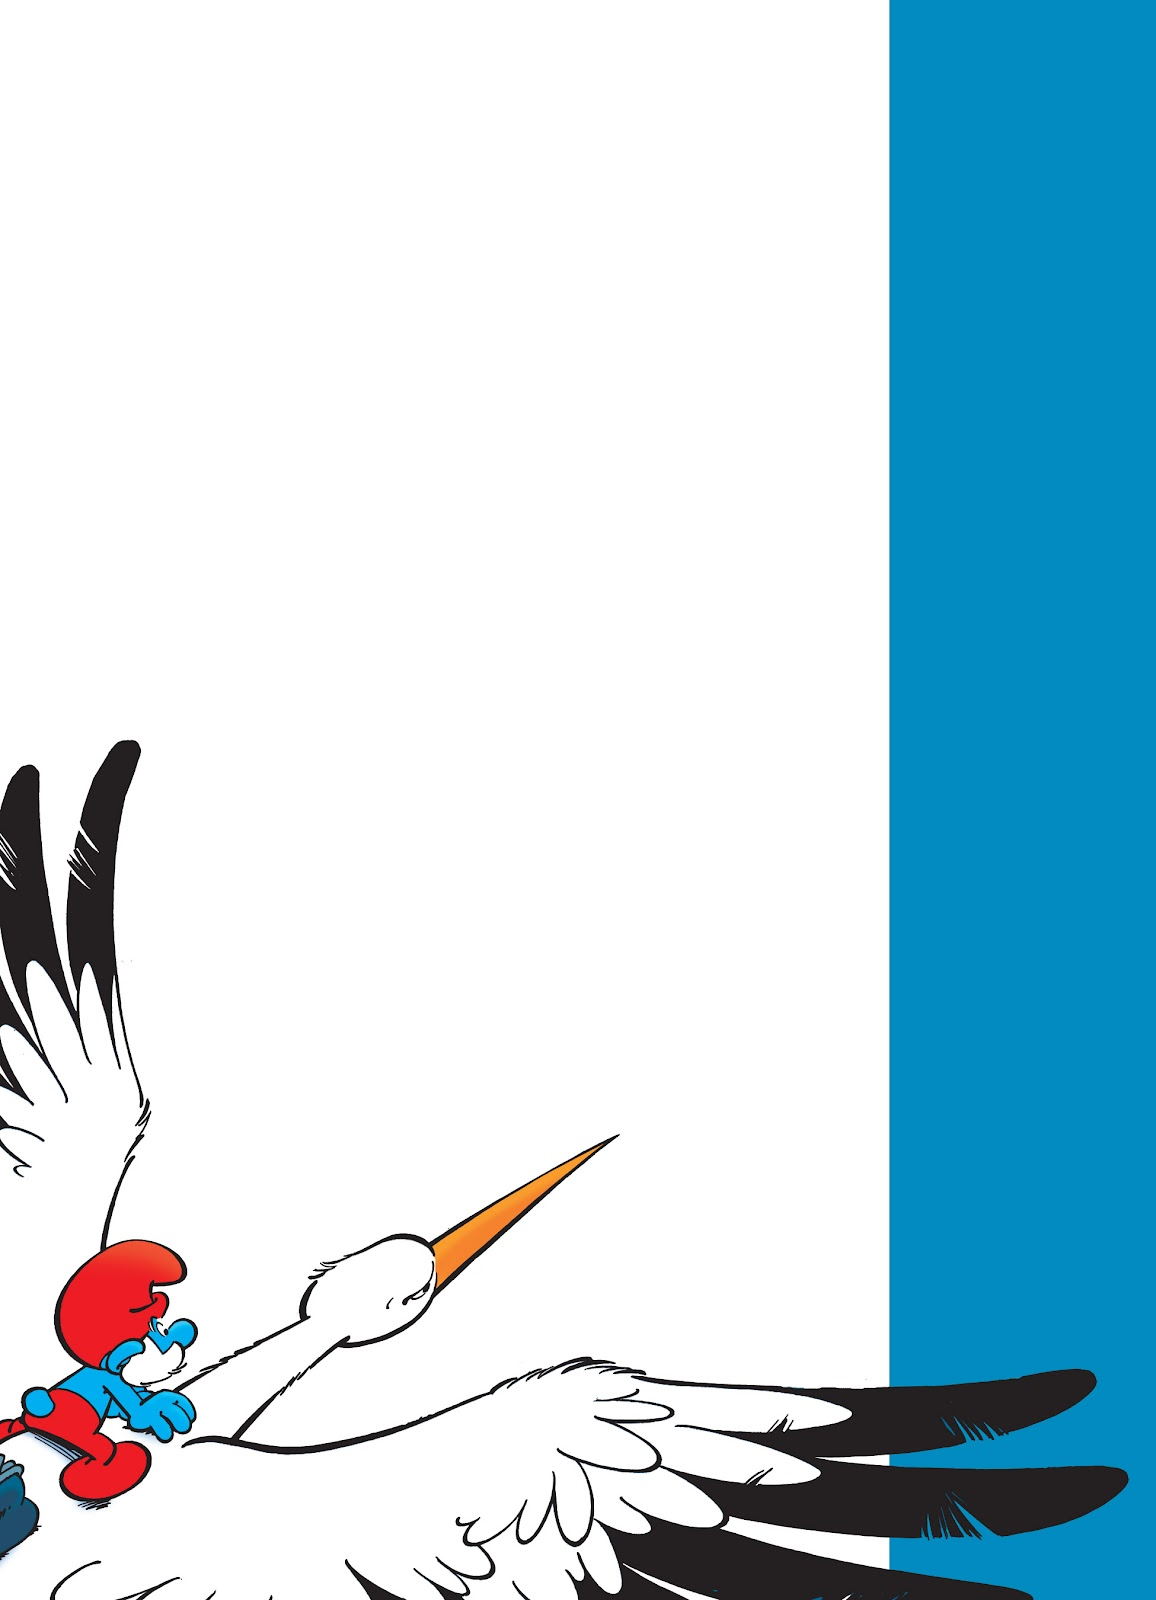 Read online The Smurfs comic -  Issue #23 - 3